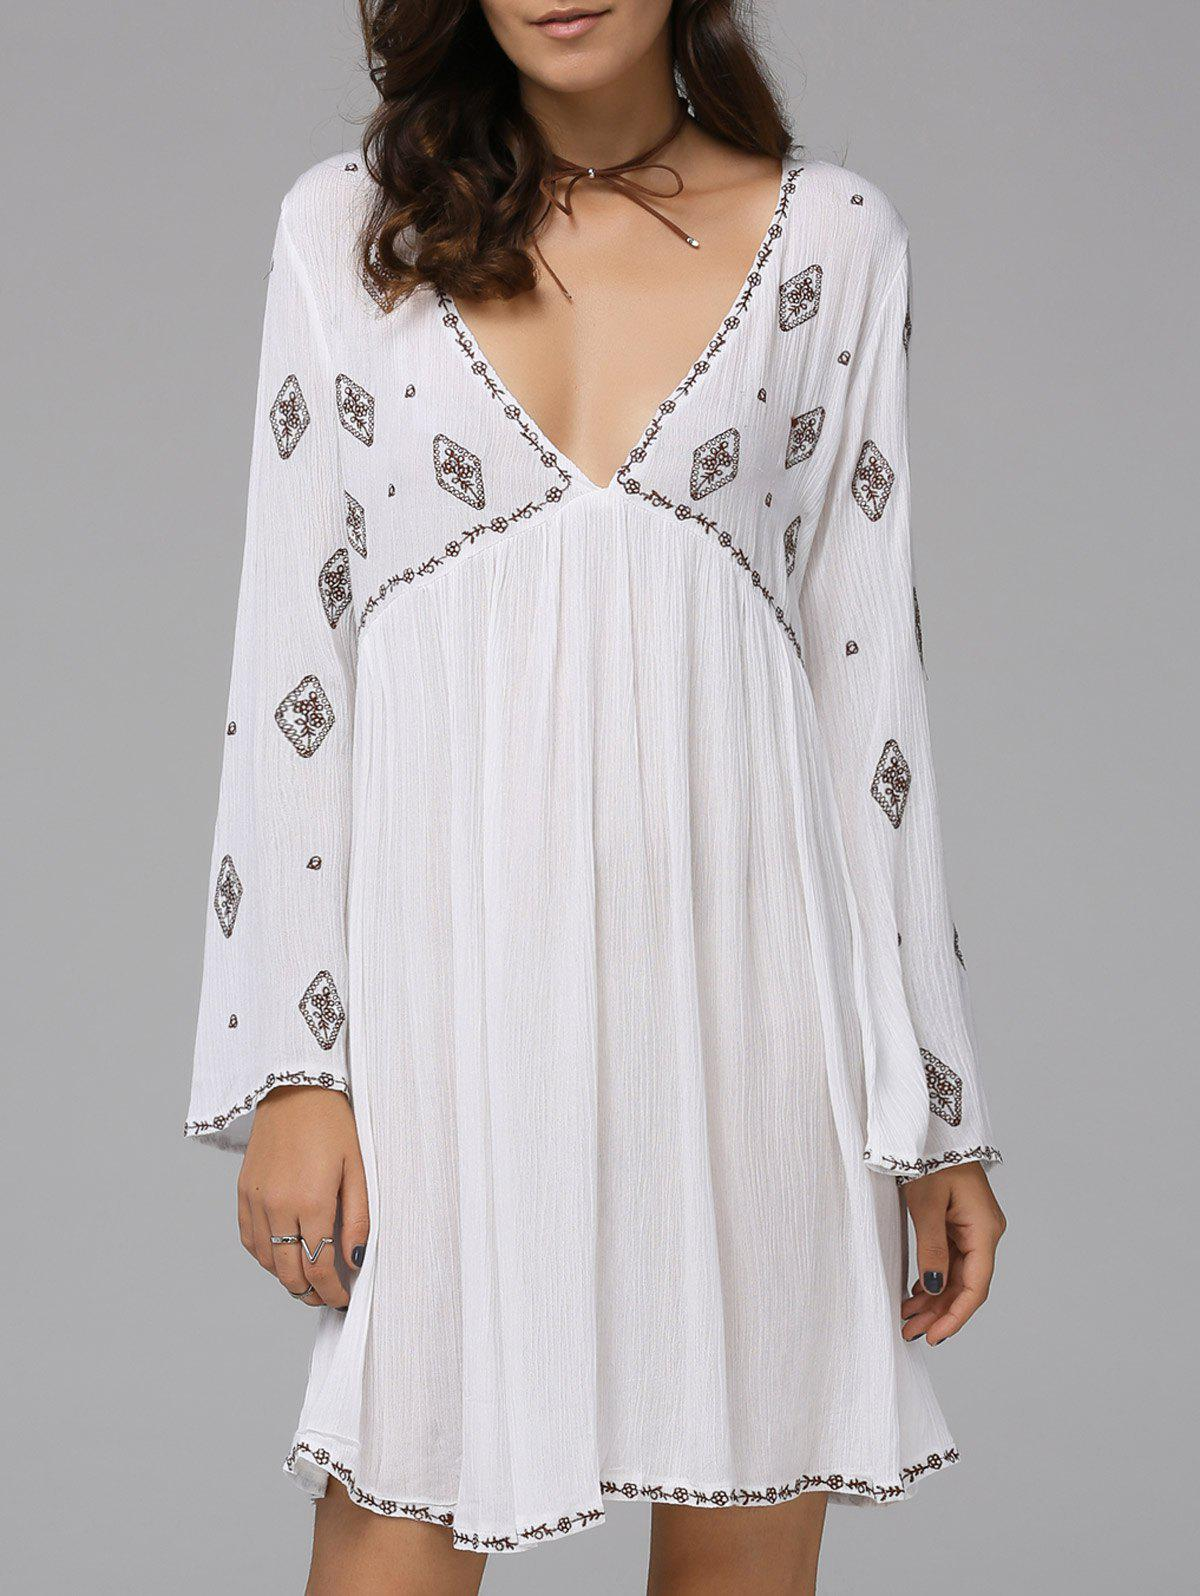 Fashionable Women's Plunging Neck Long Sleeve Embroidered Dress - WHITE L